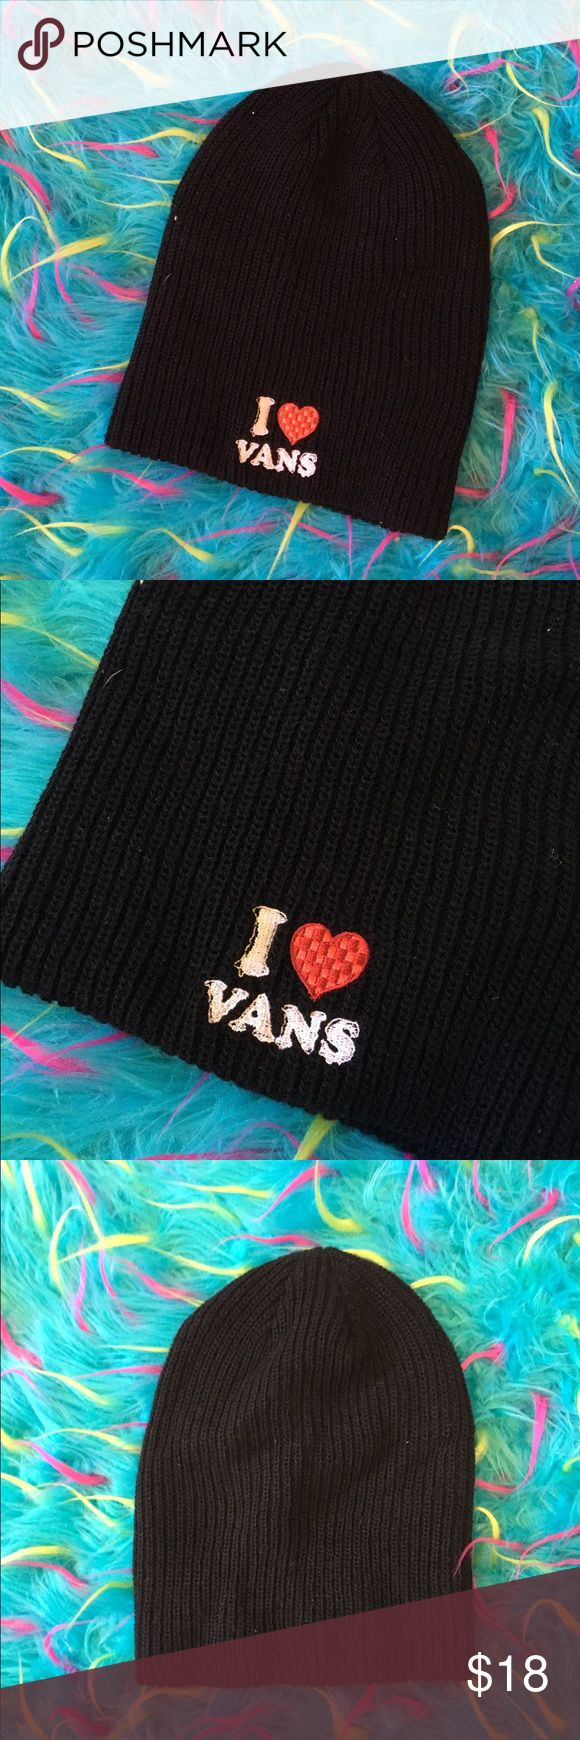 •I ❤️ VANS Classic Black Beanie•BNWOT✨ NWOT ✨ This beanie has been washed and is in excellent condition! Never worn only the tags have been taken off because I thought I would wear it. Vans Accessories Hats